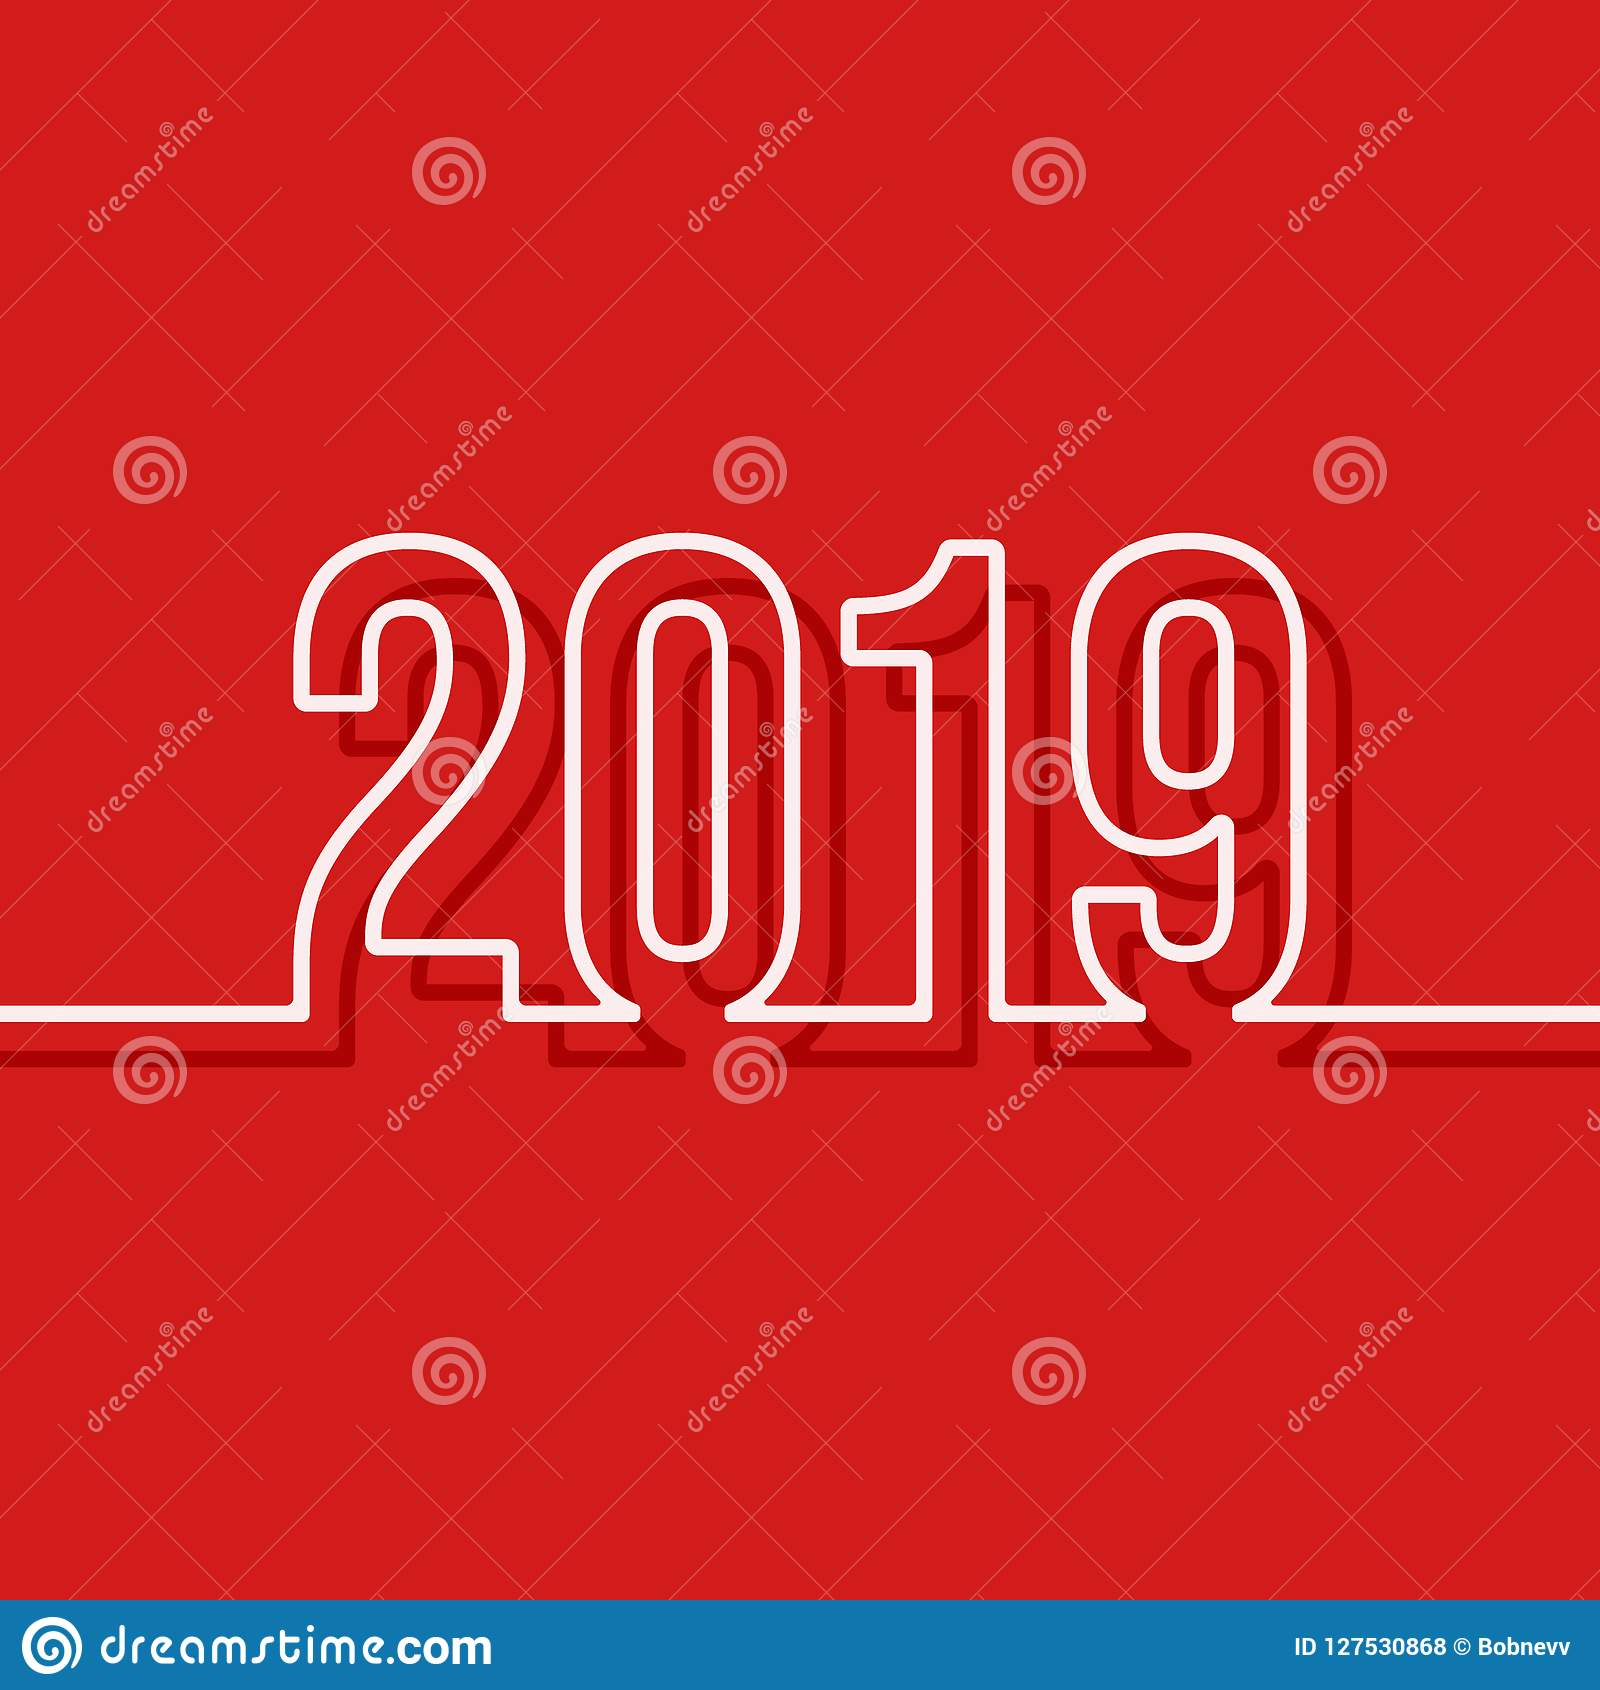 2019 new year cover template minimal design background